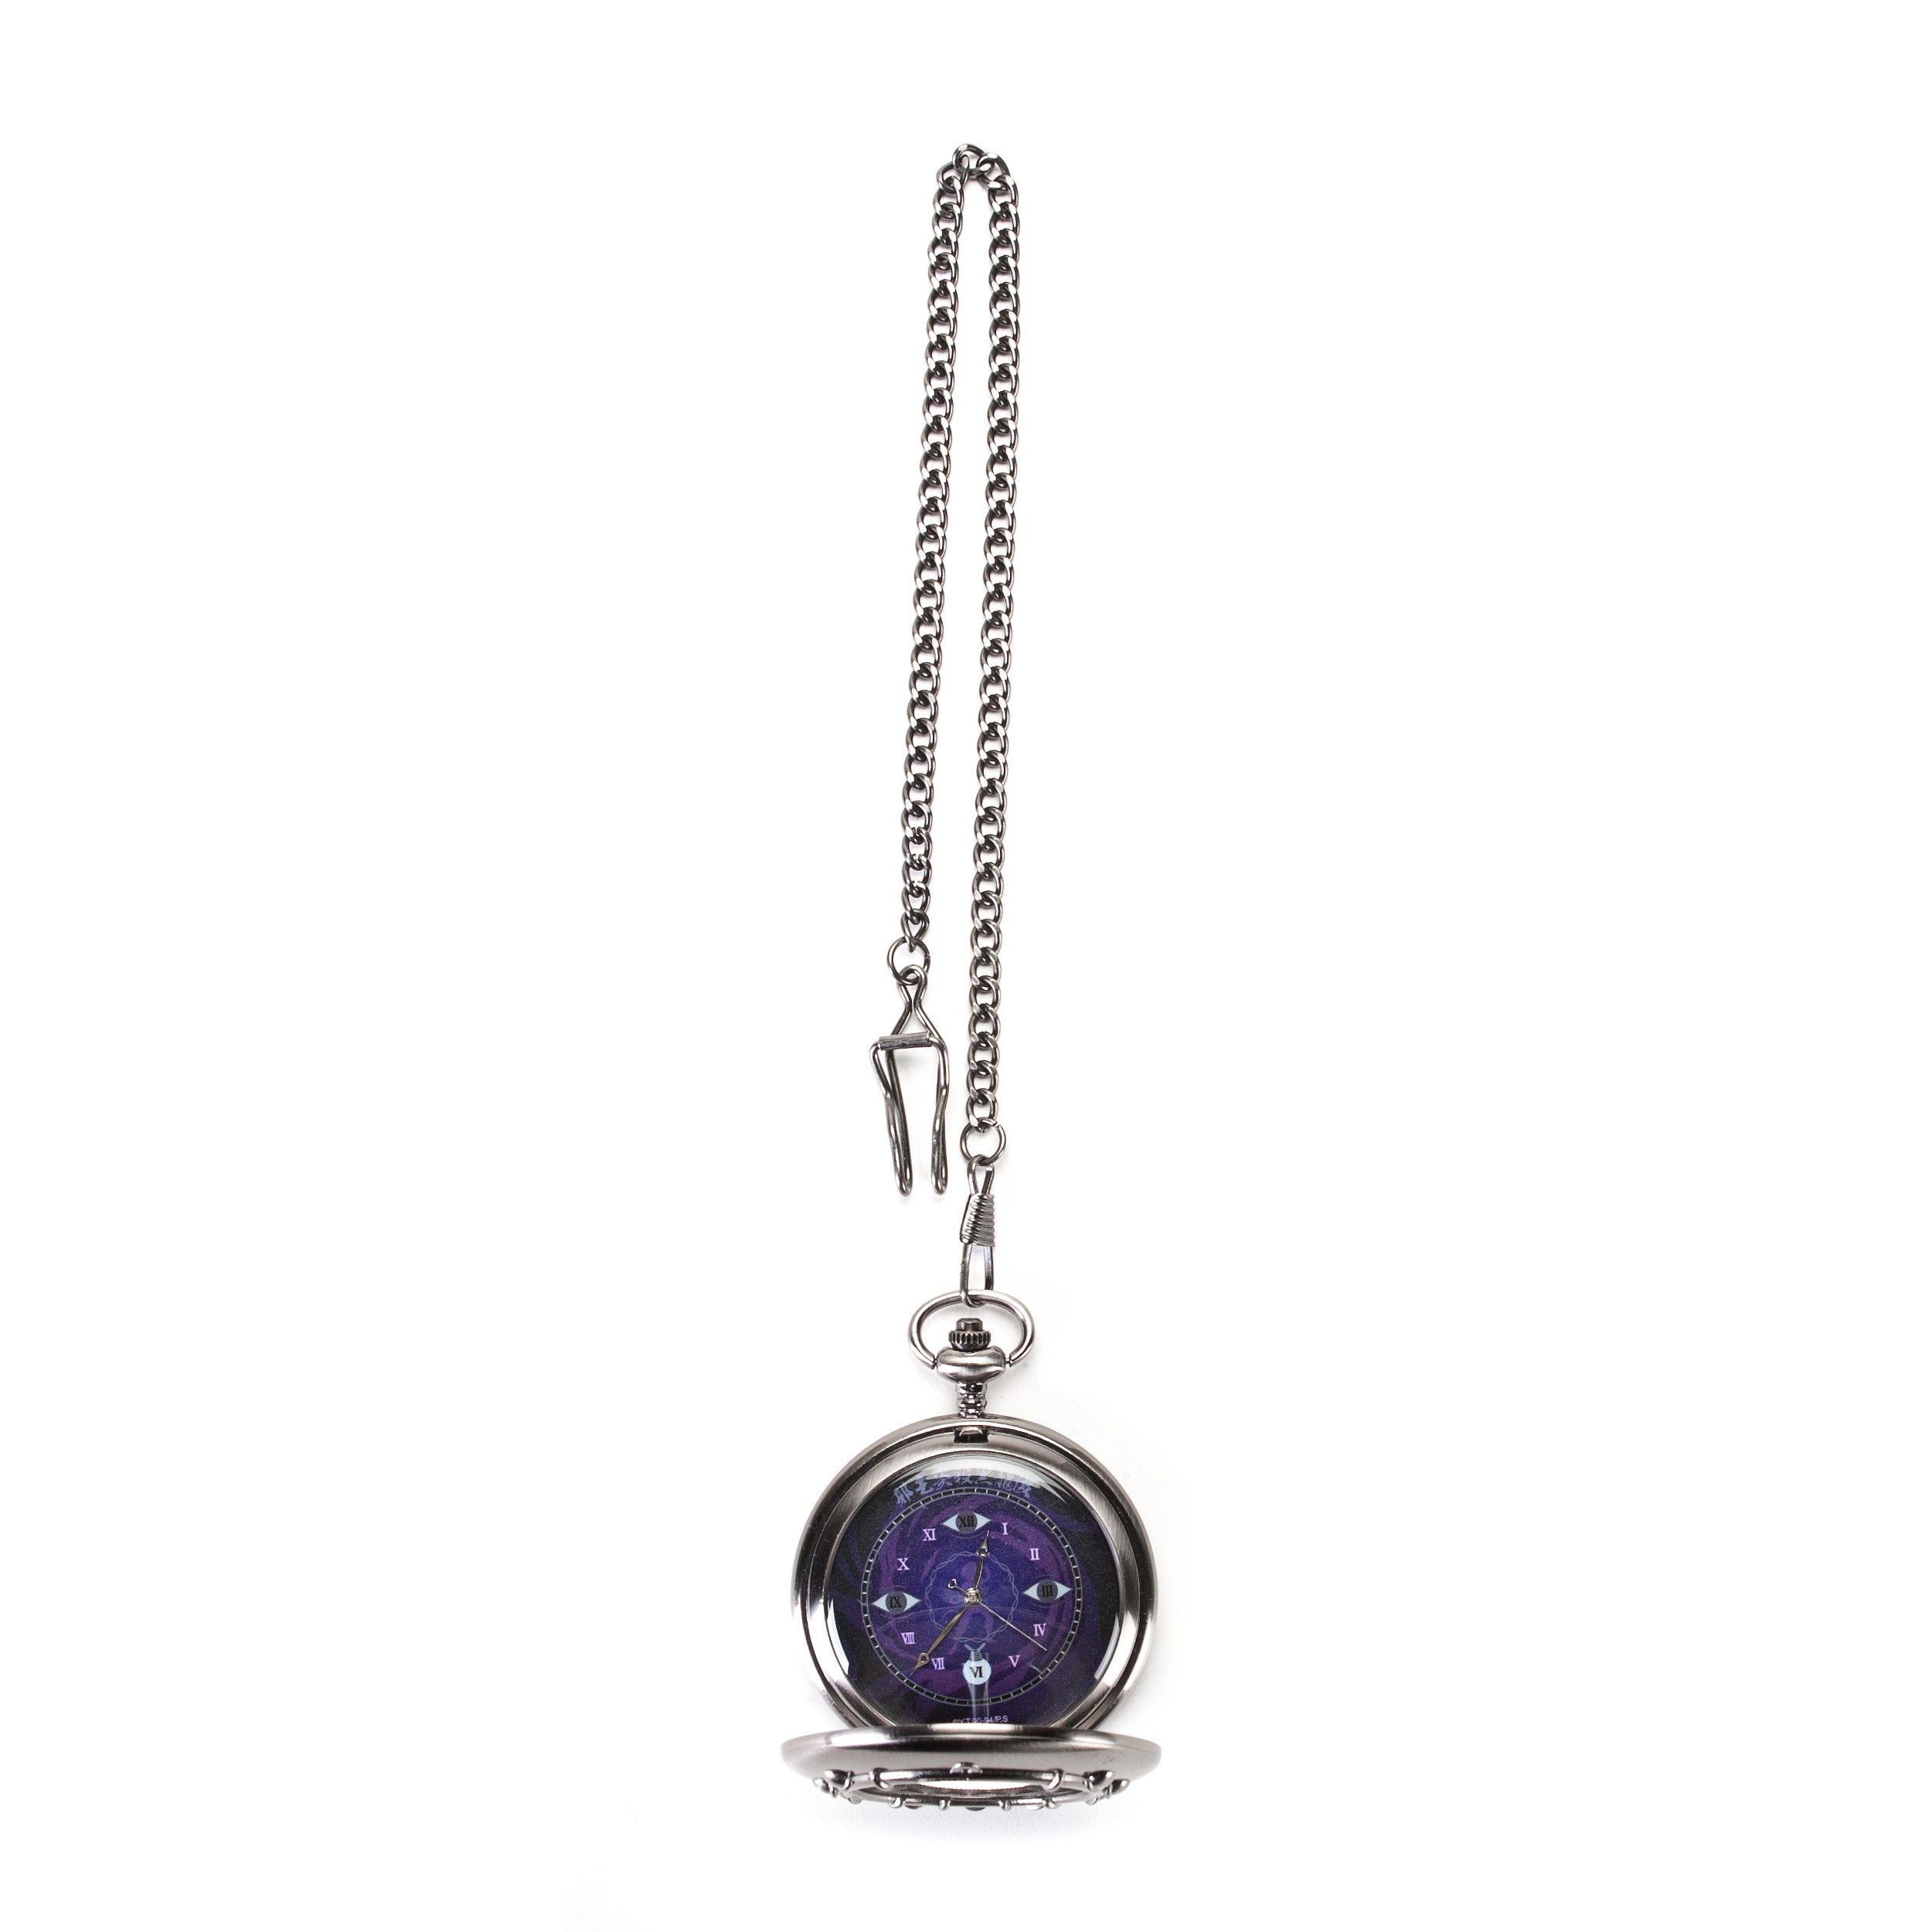 Yu Yu Hakusho Hiei Dark Mirror Pocket Watch